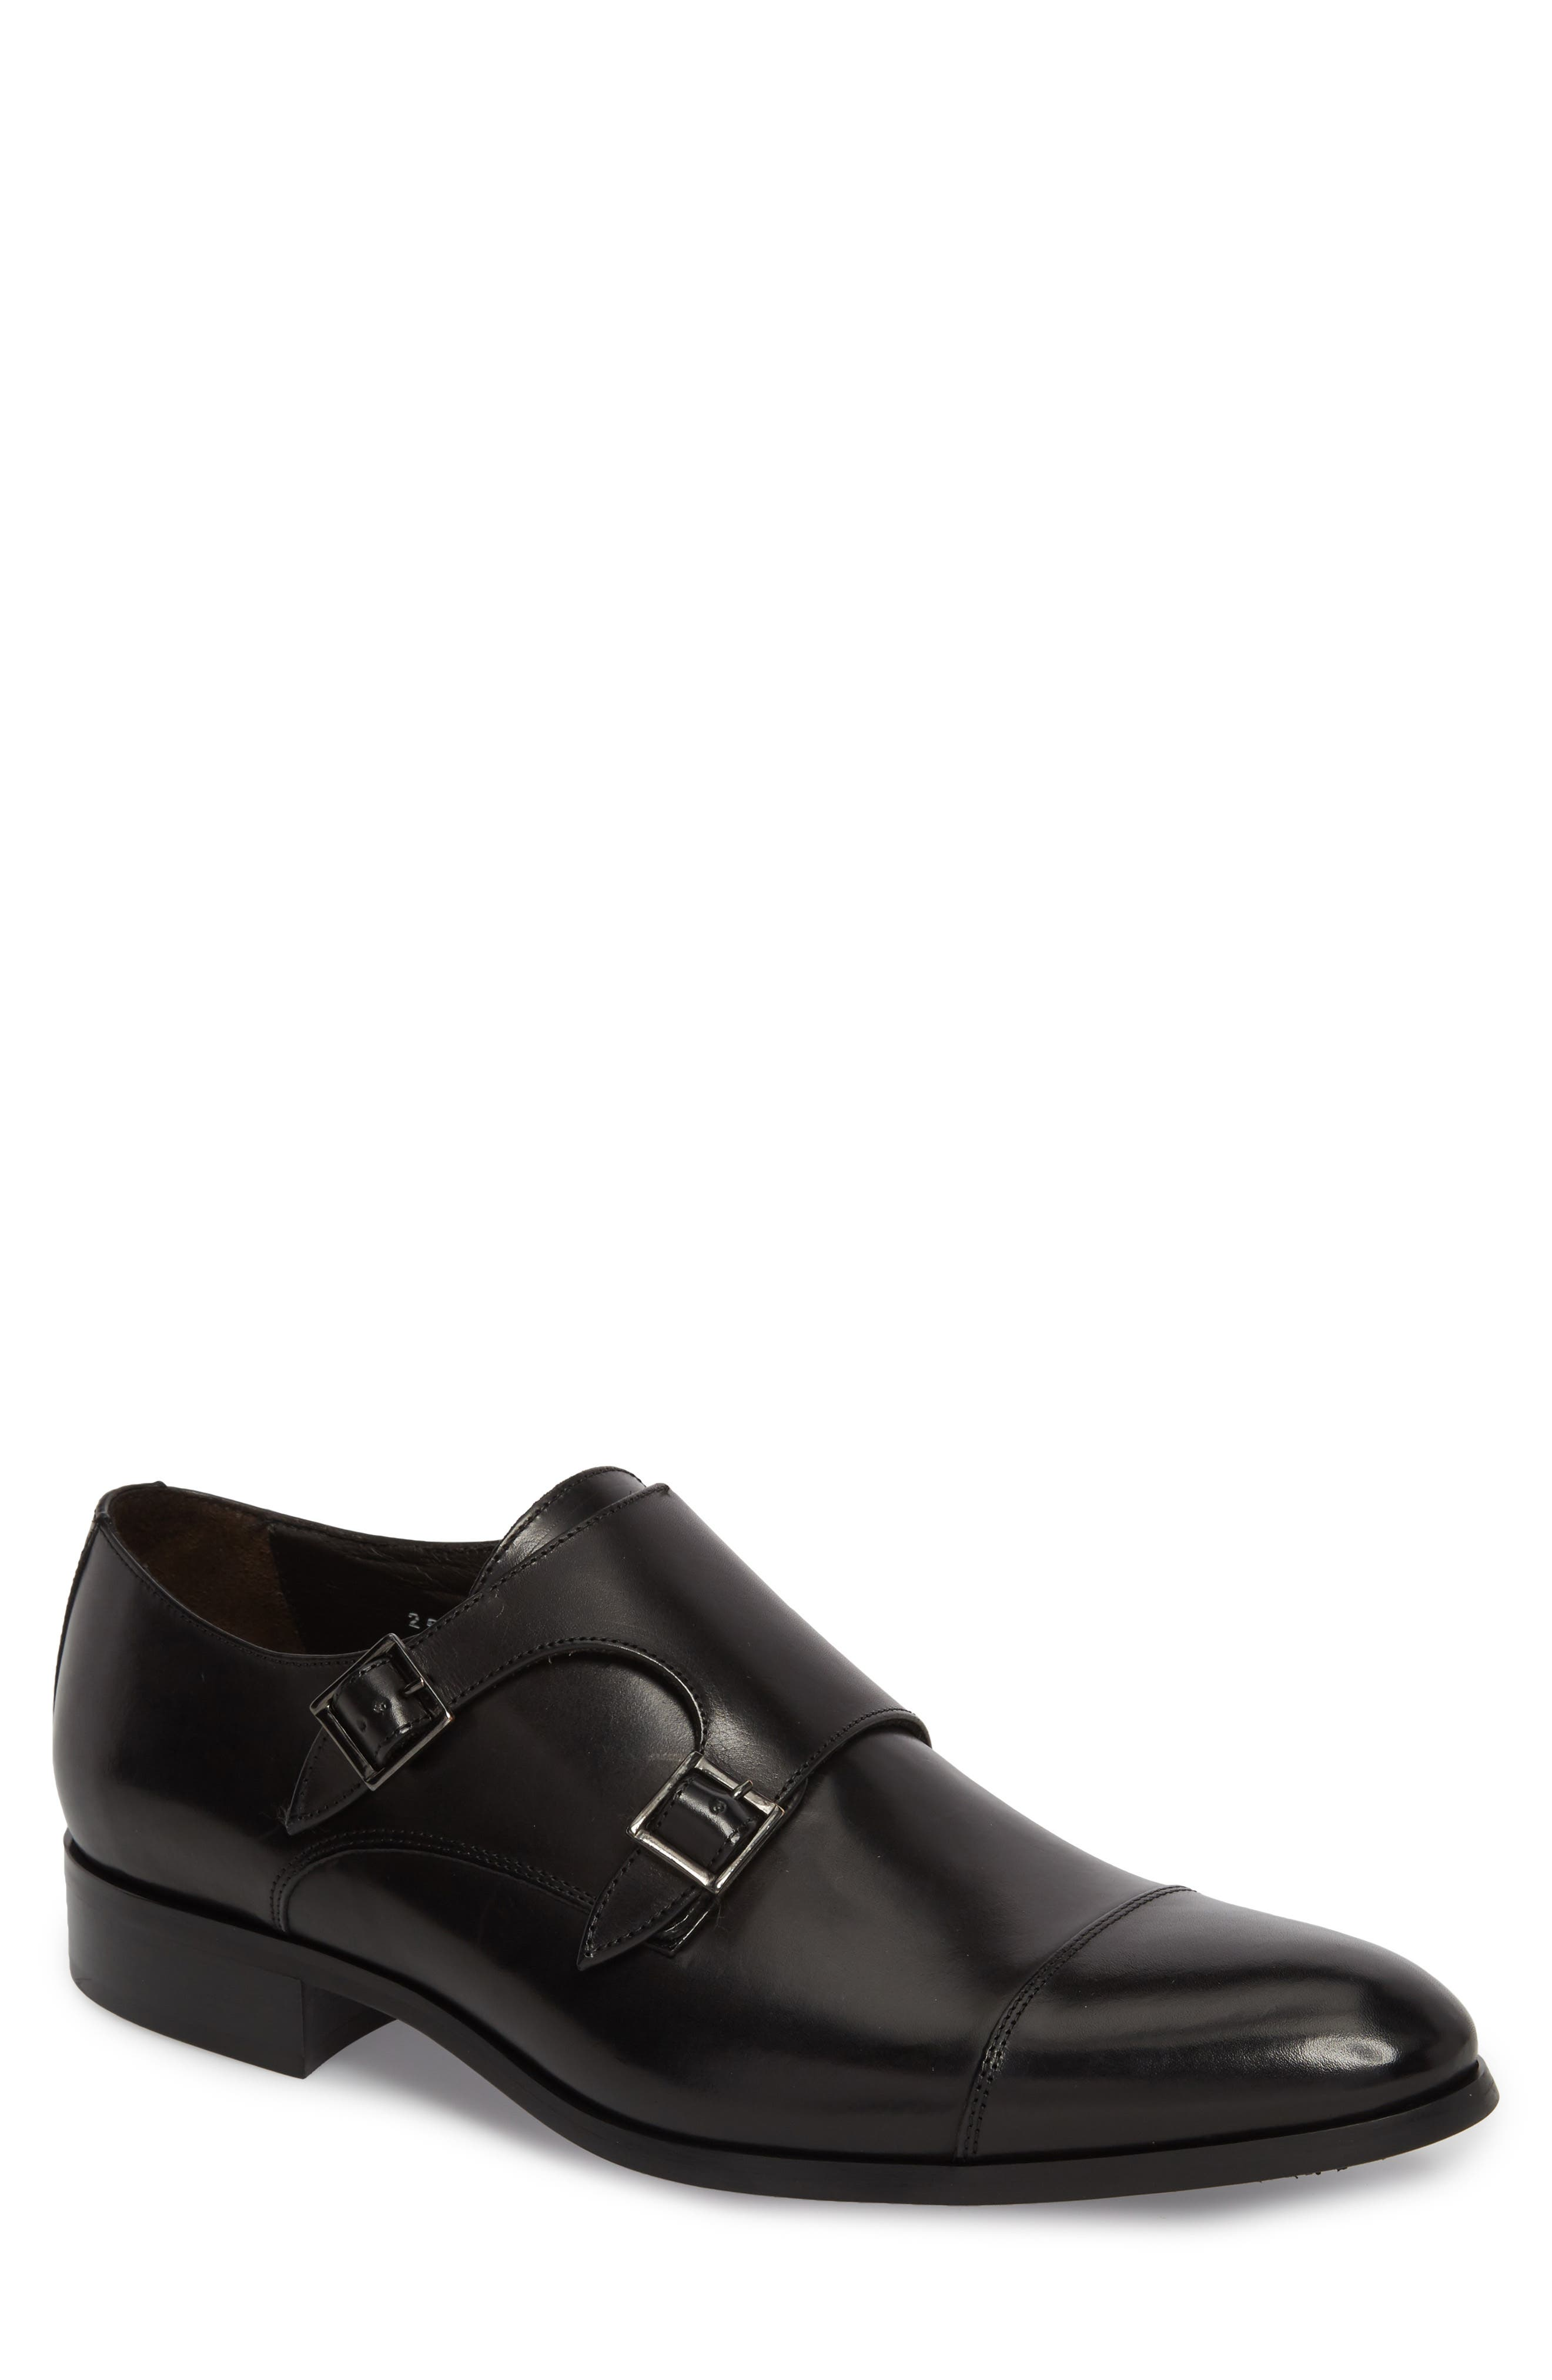 To Boot New York Bankston Cap Toe Double Strap Monk Shoe, Black